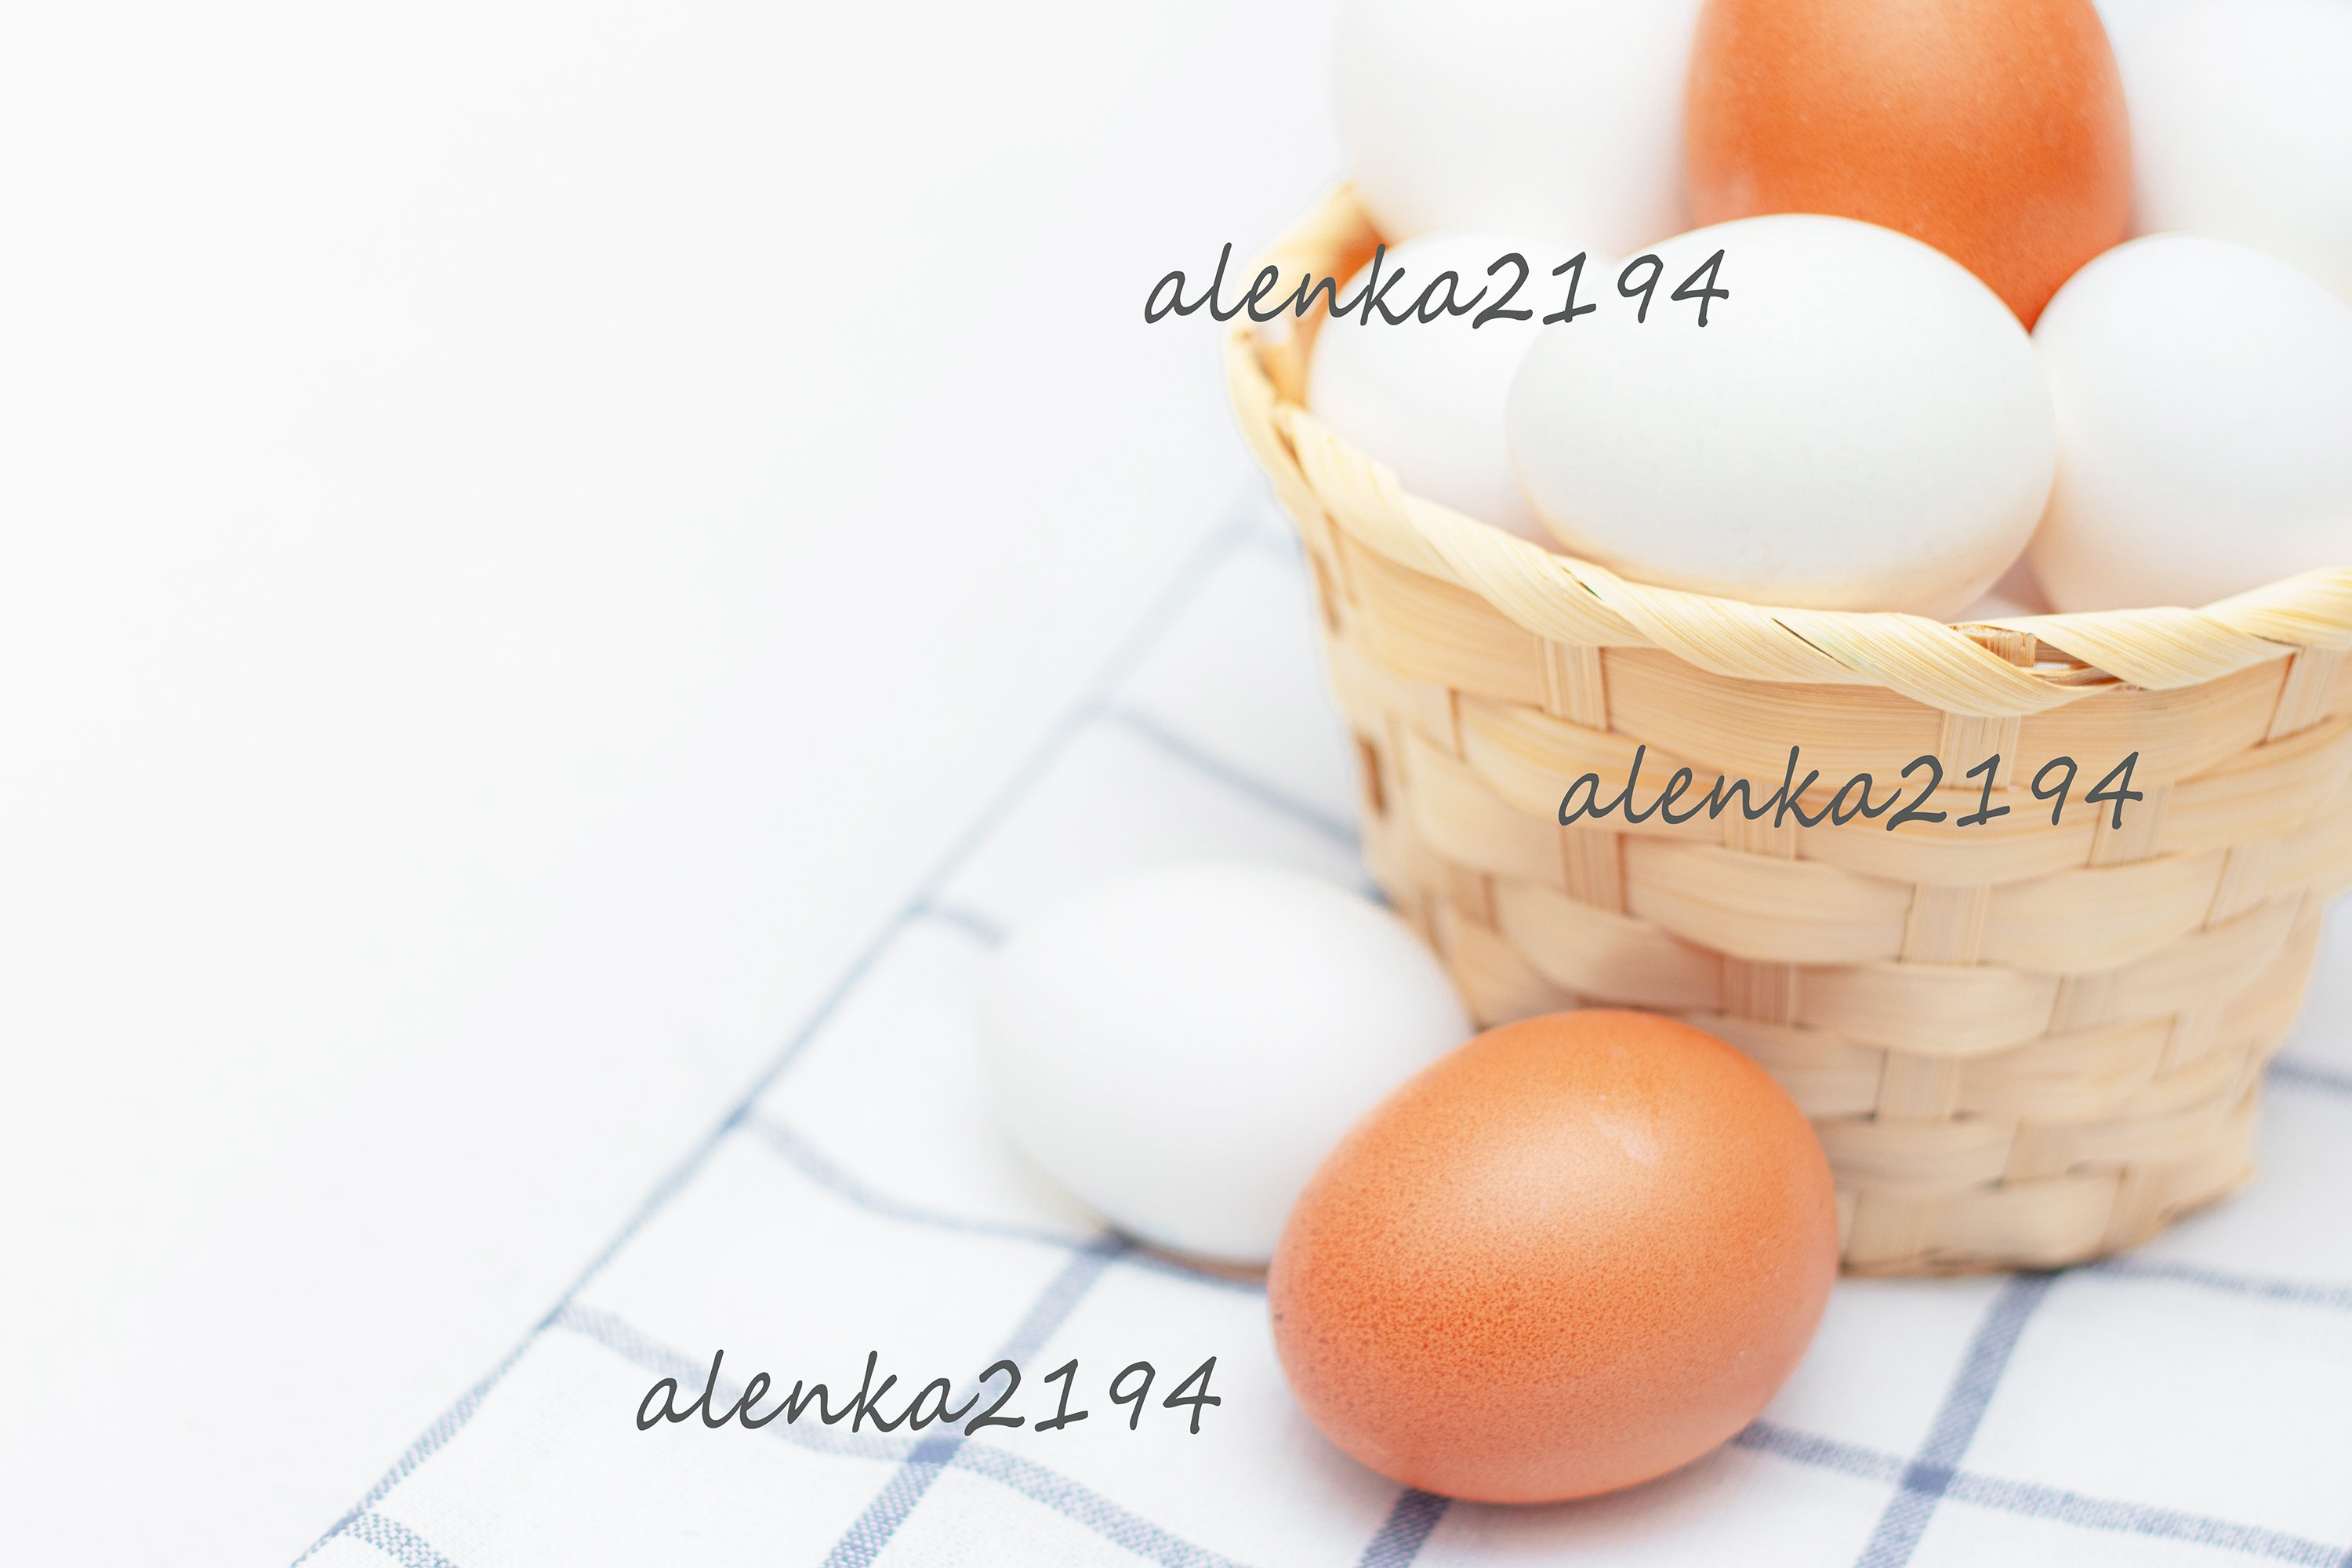 Chicken eggs in a basket on a kitchen towel example image 1